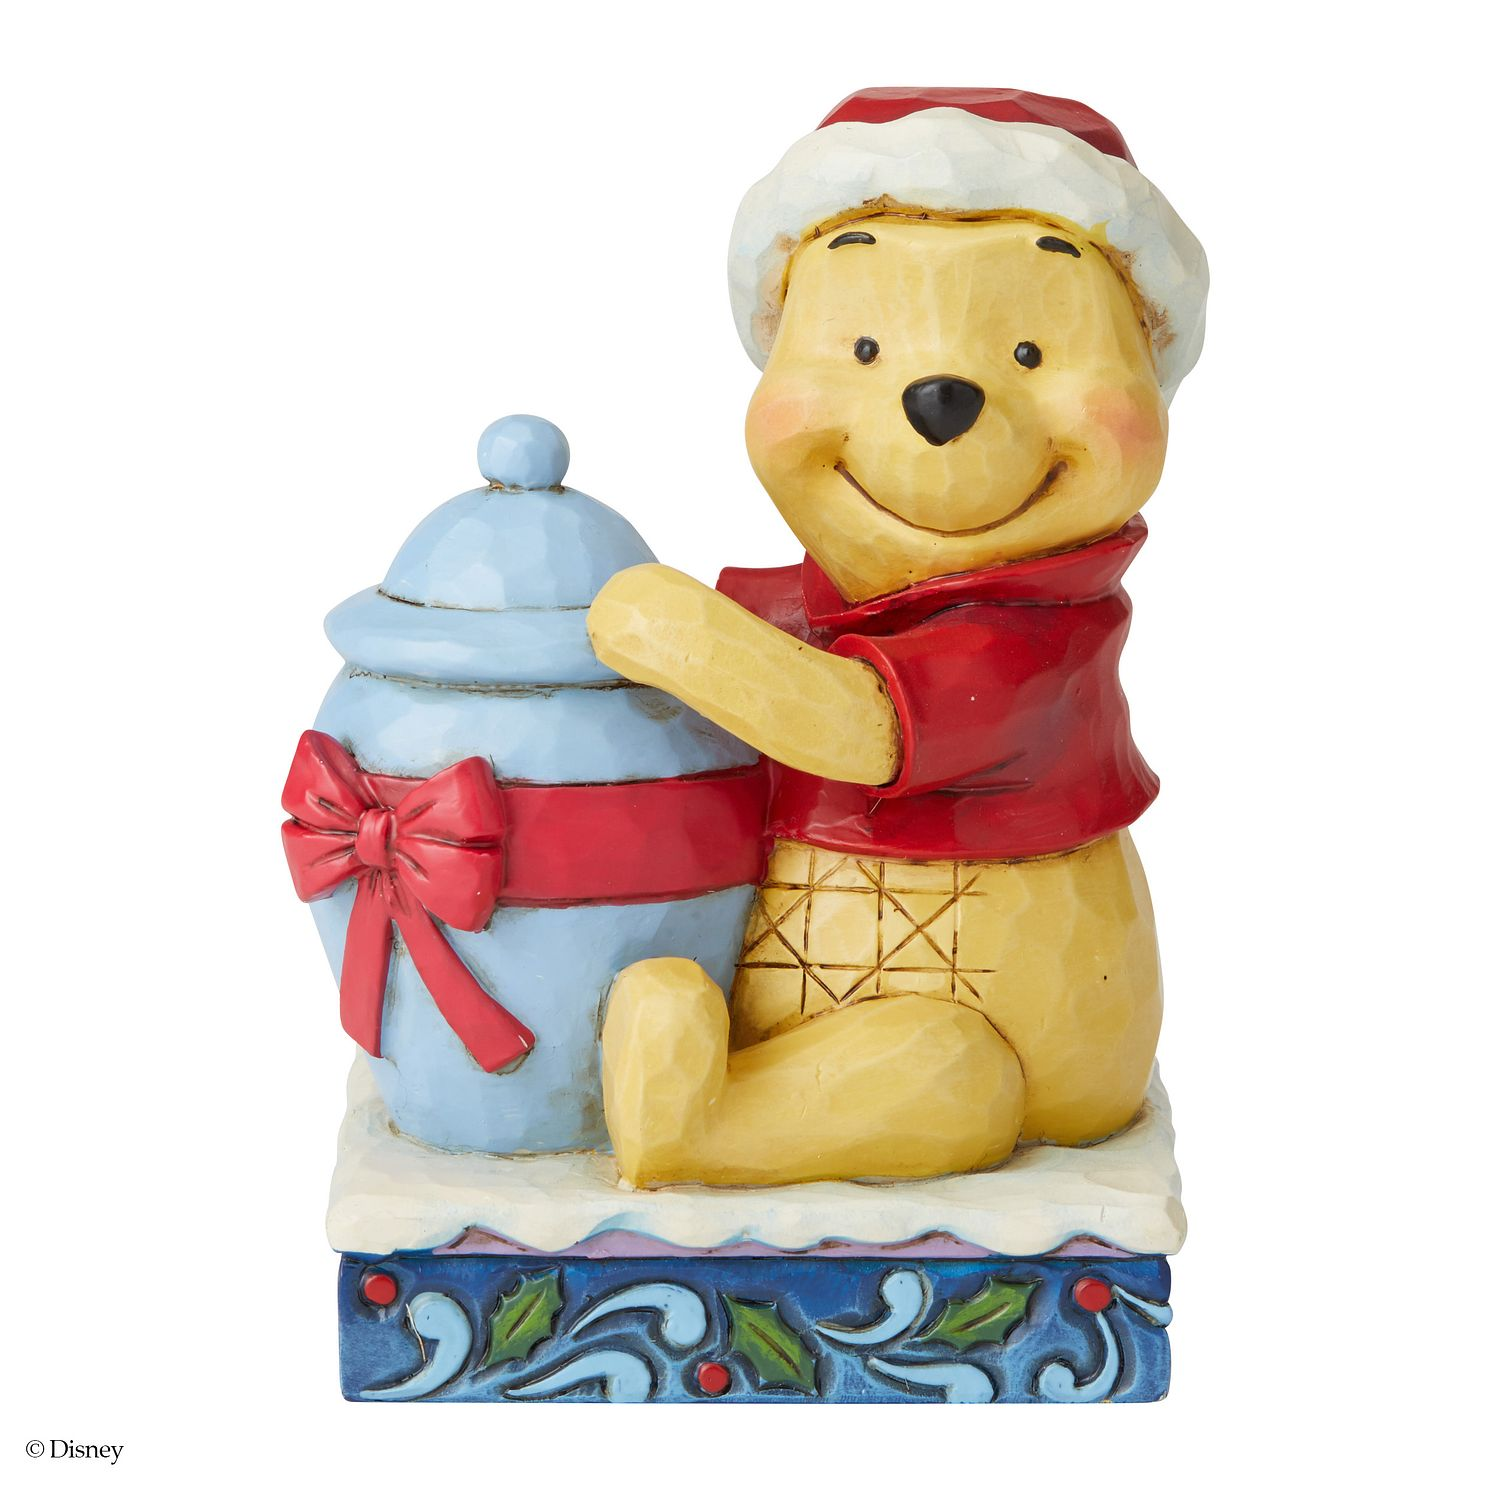 Disney Traditions Winnie The Pooh Holiday Honey Figurine - Product number 8213496